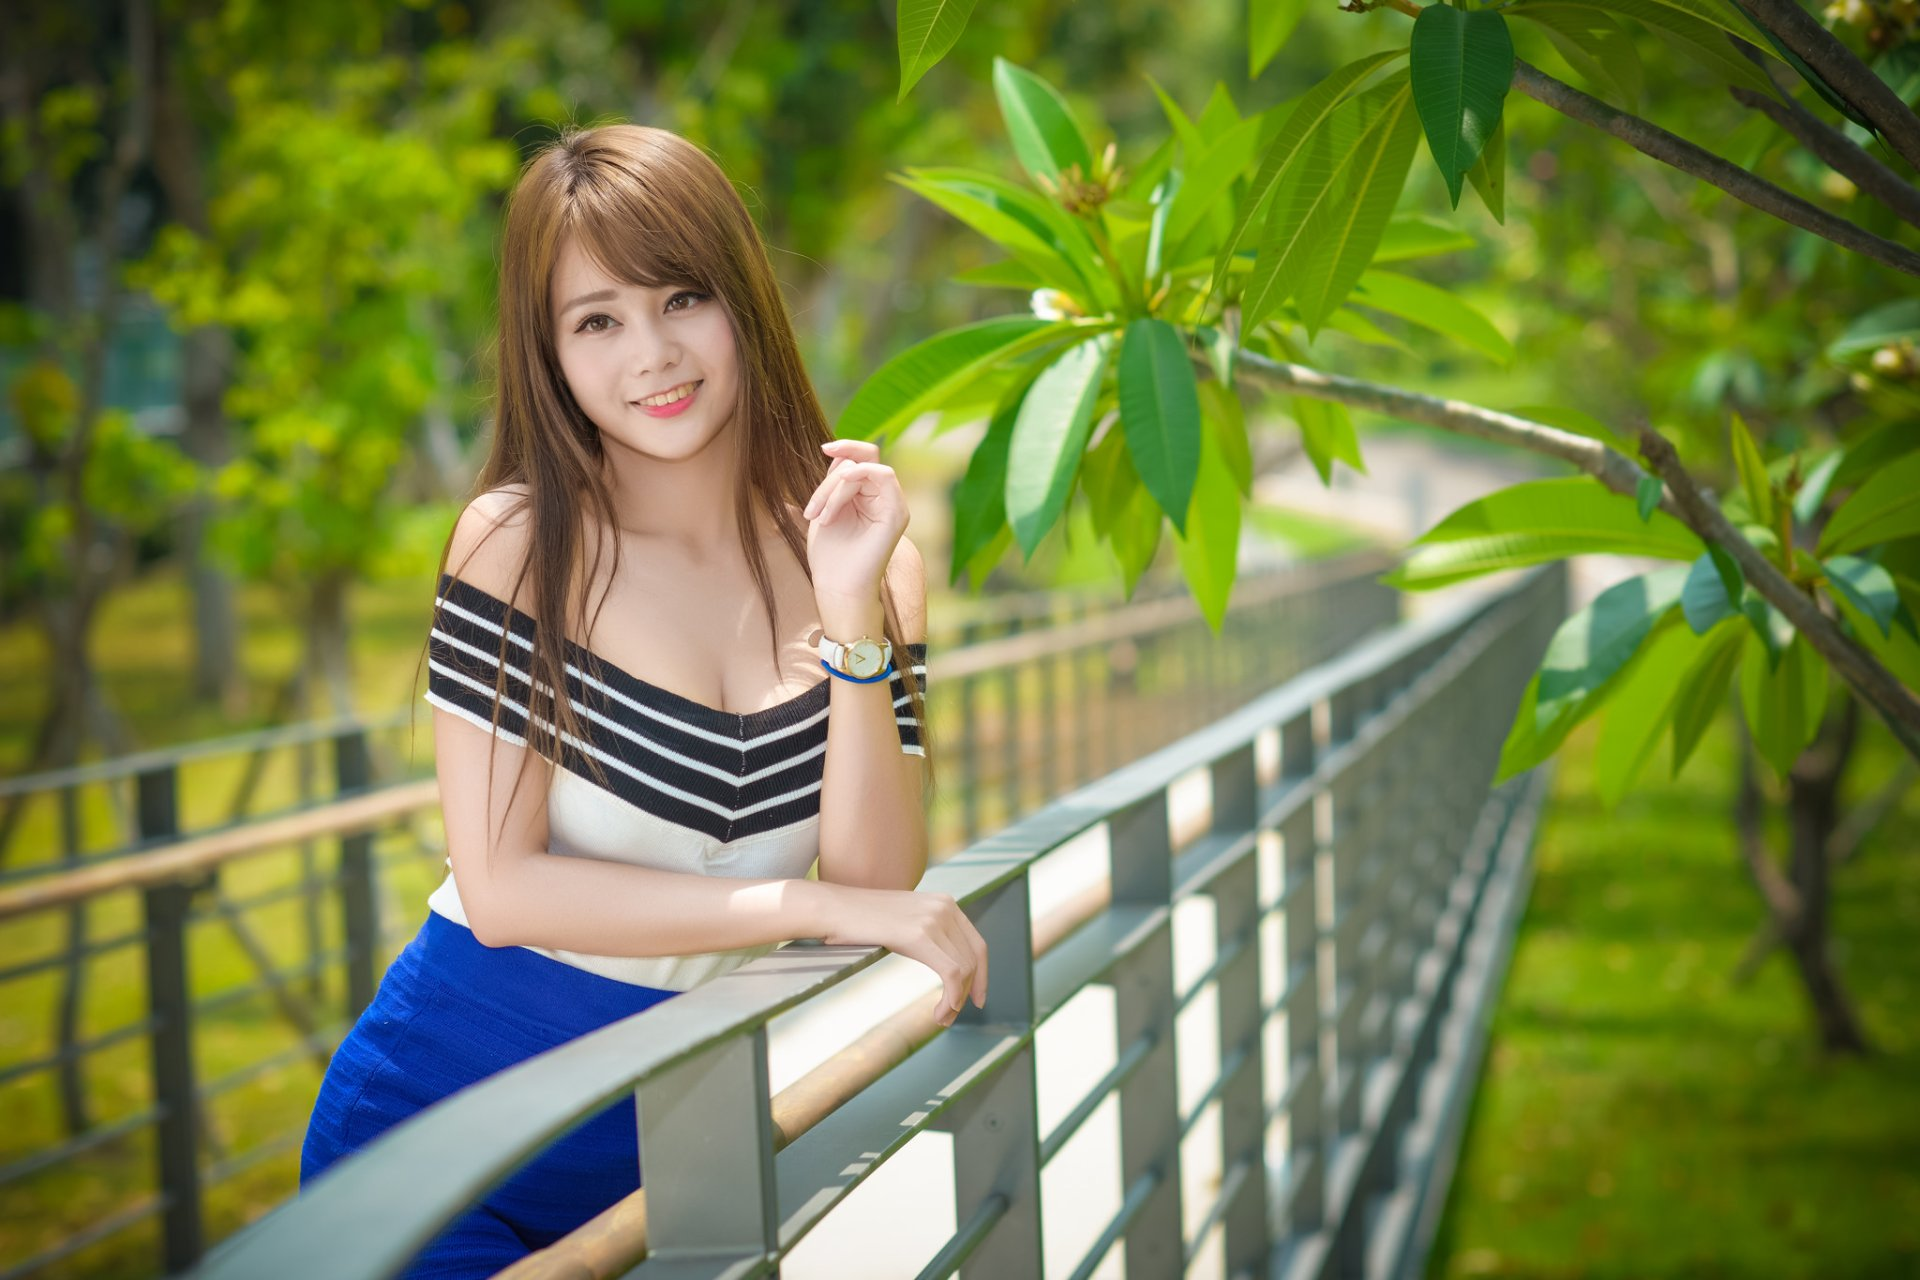 女性 - 亚洲  Woman 模特 女孩 Brunette Brown Eyes Smile Depth Of Field 壁纸